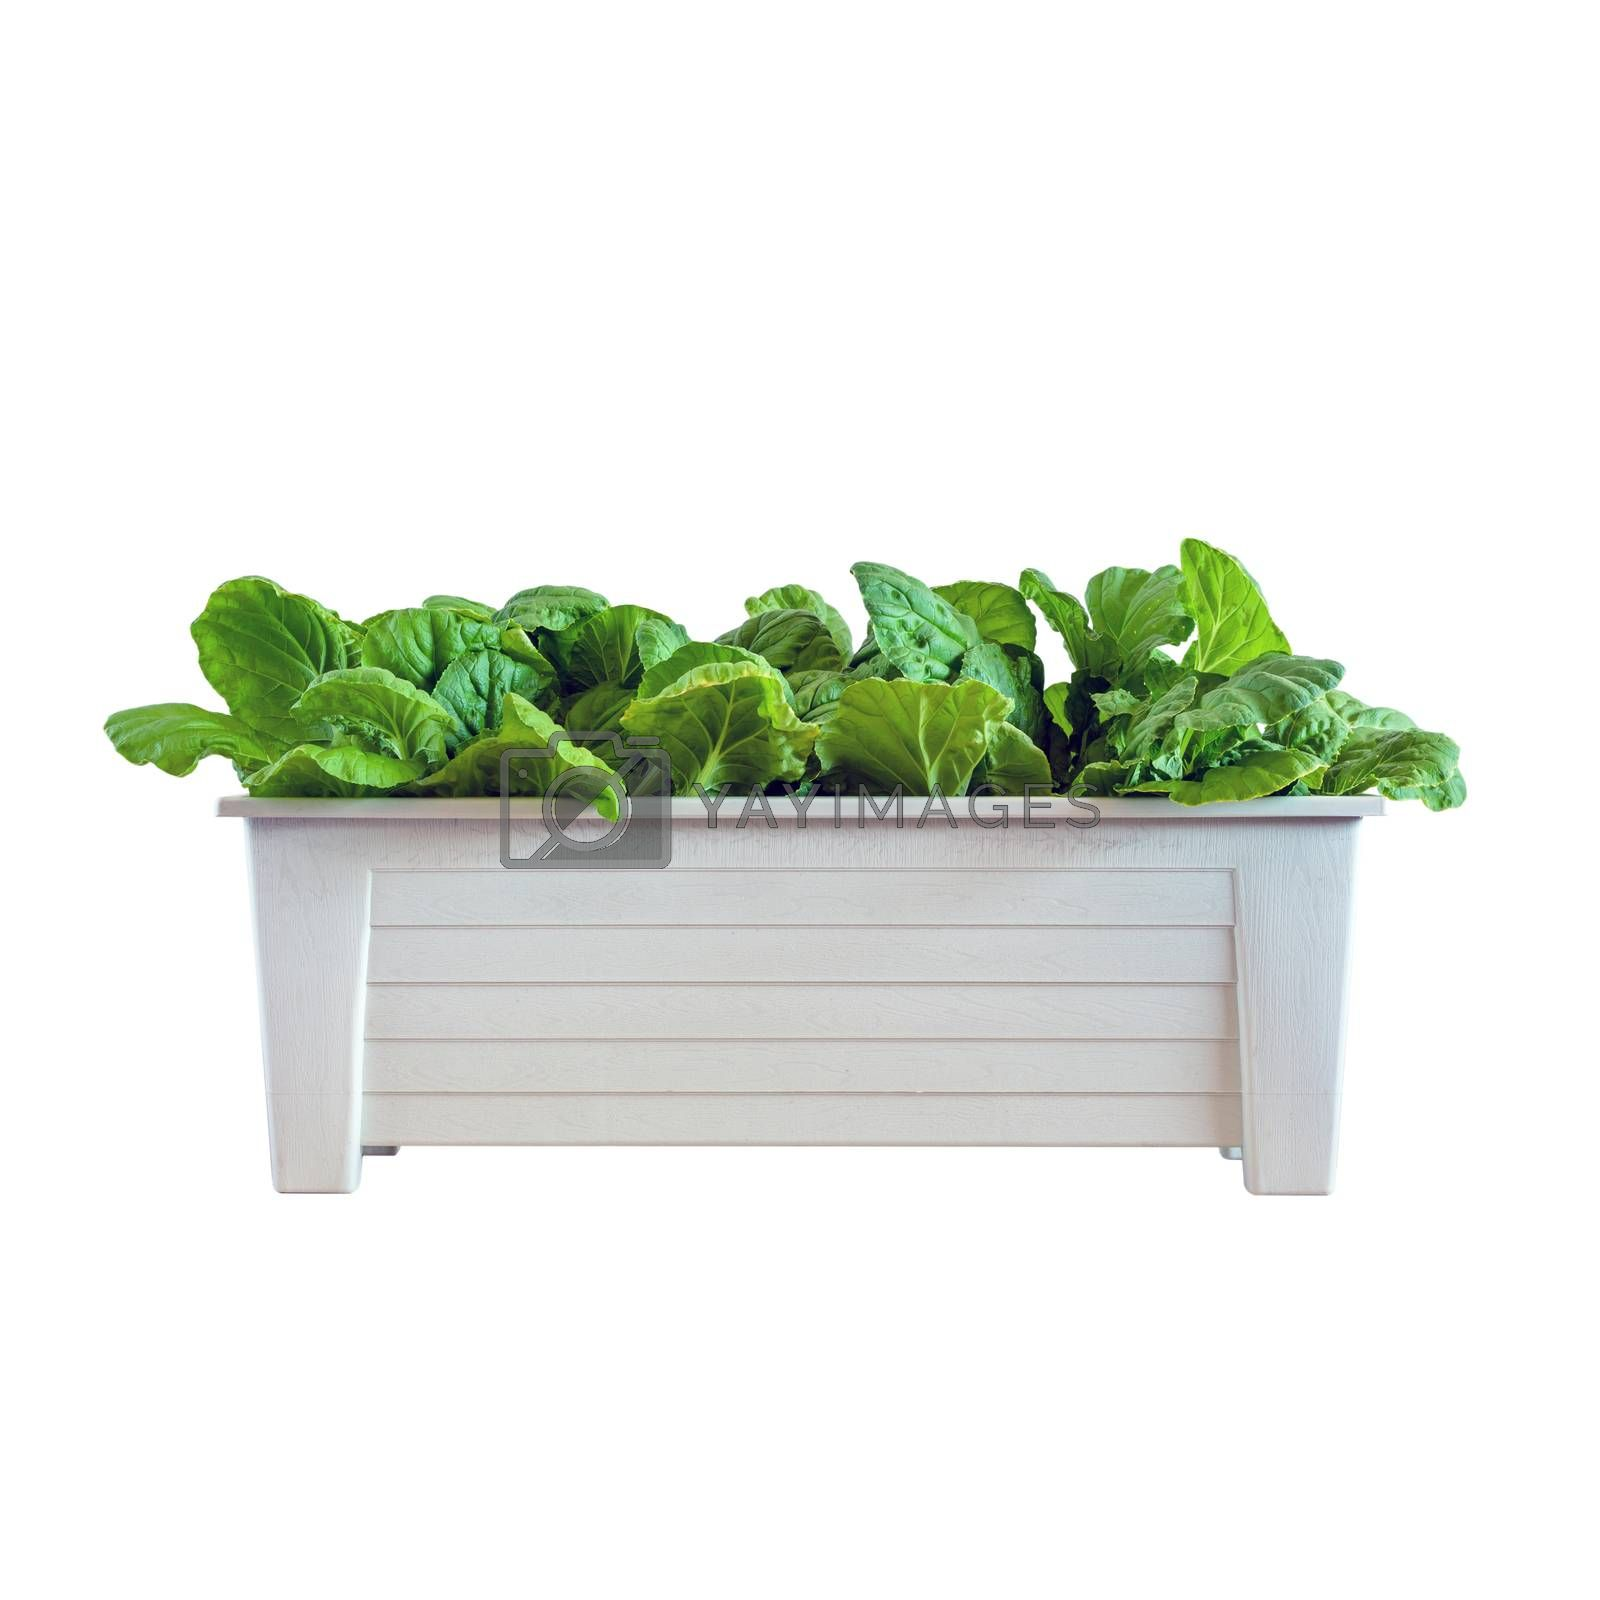 Hydroponic vegetables growing in pot  by siraanamwong